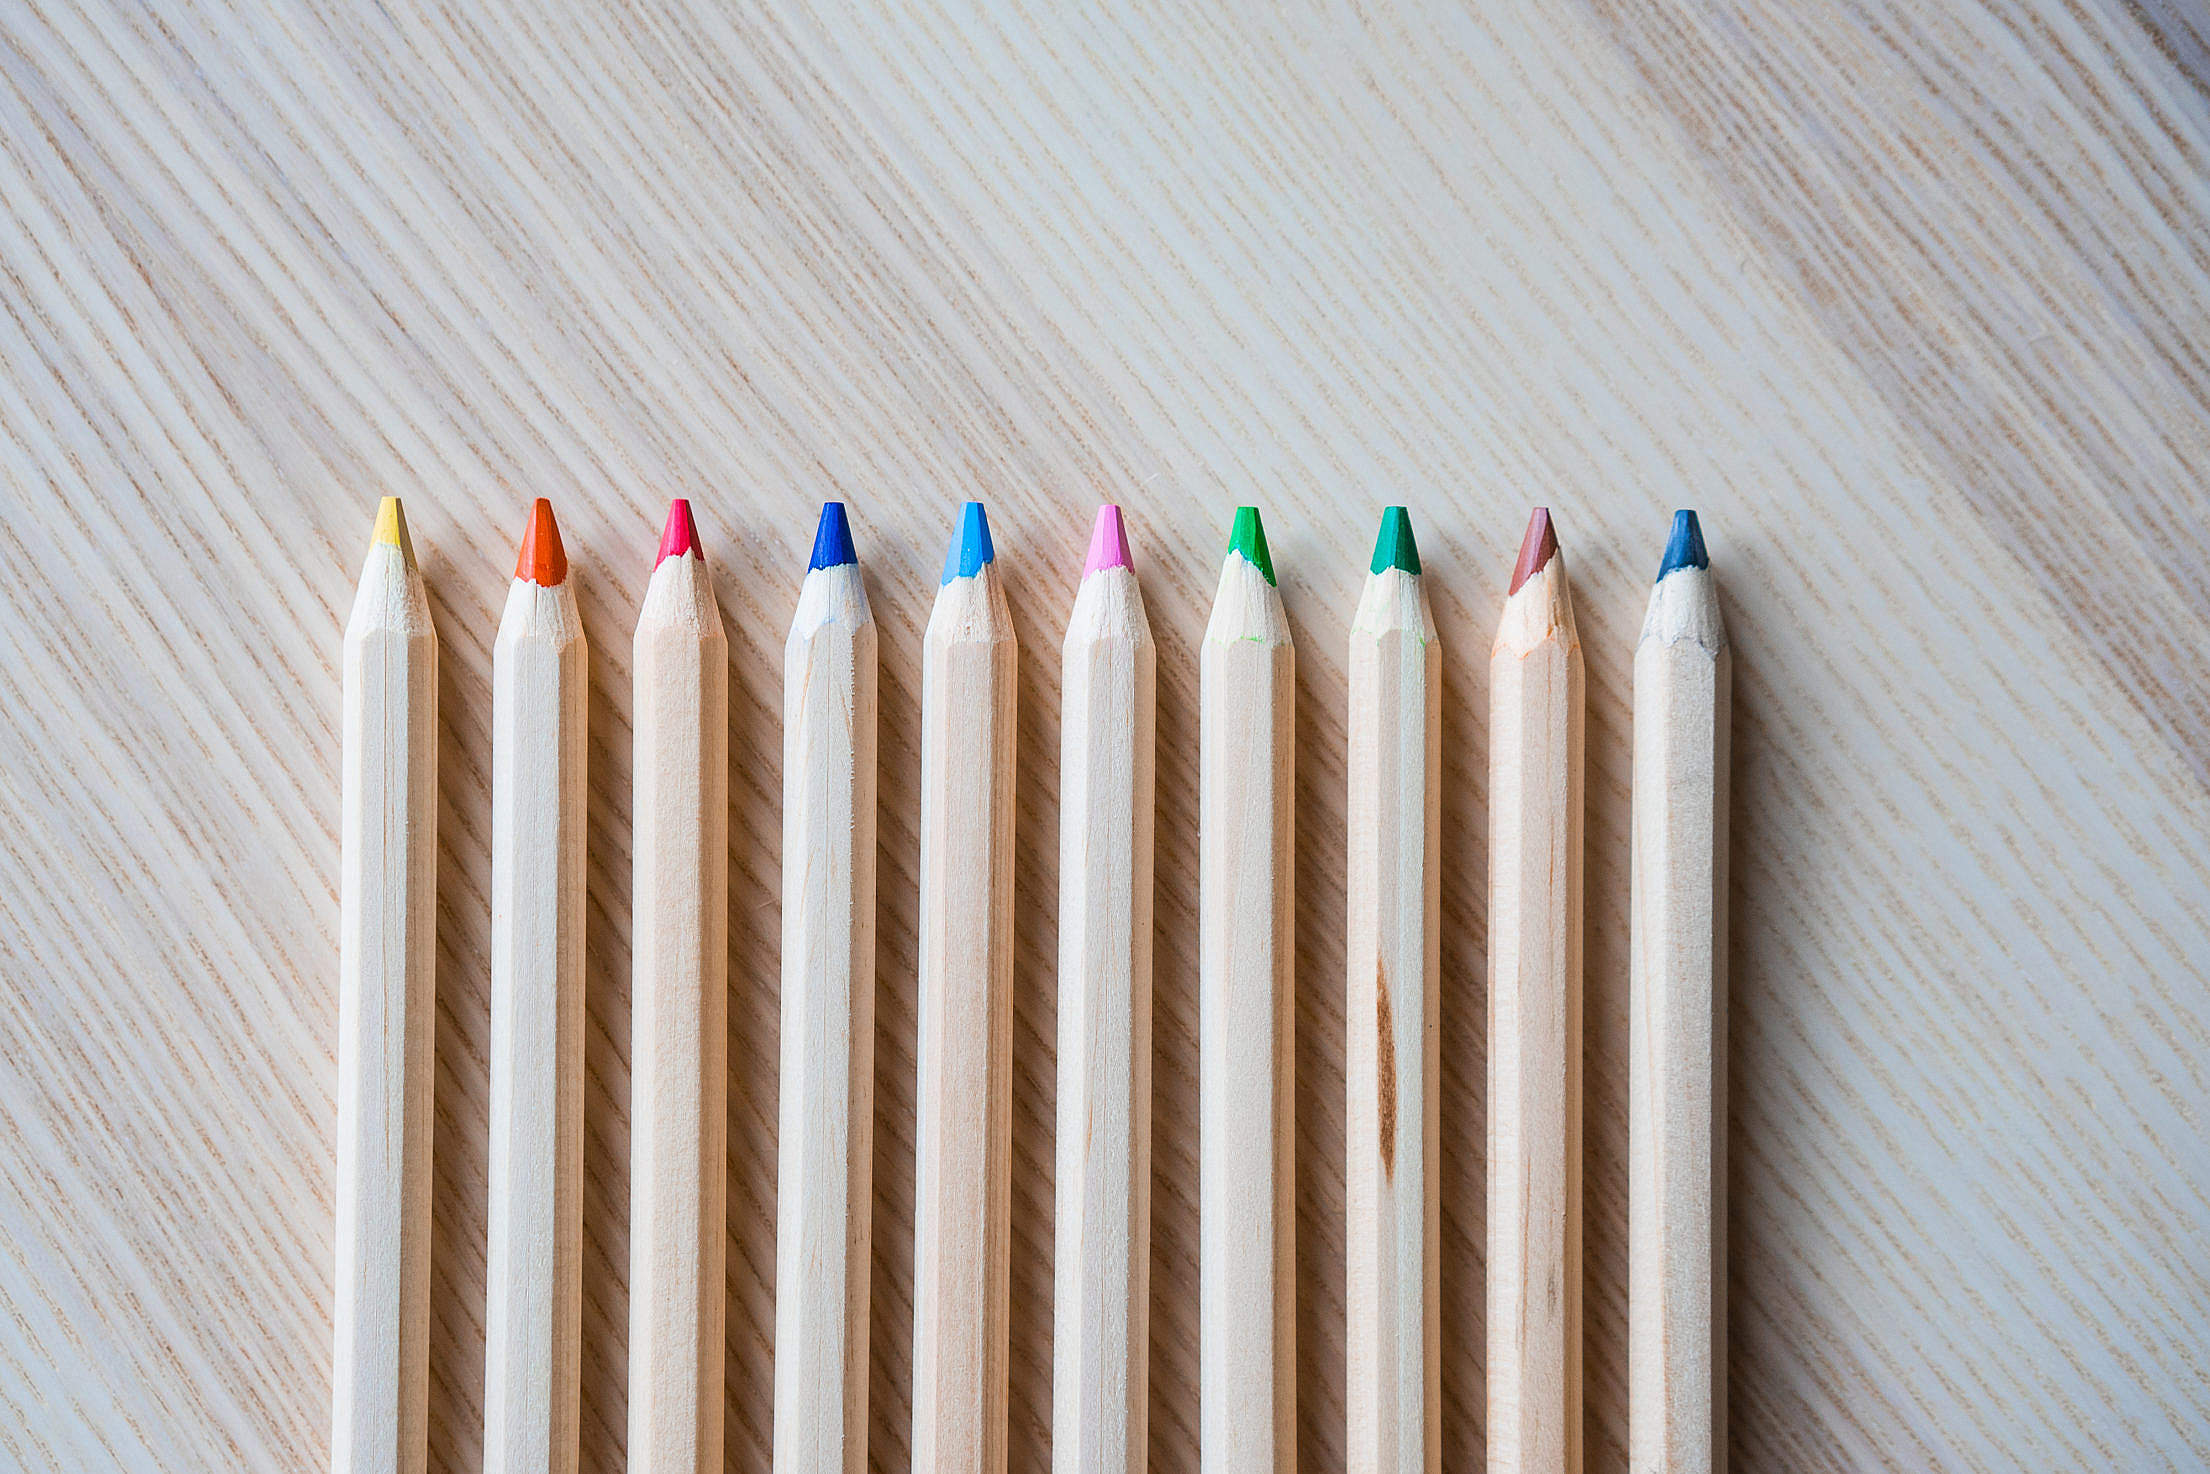 Colored Pencils in a Row #1 Free Stock Photo